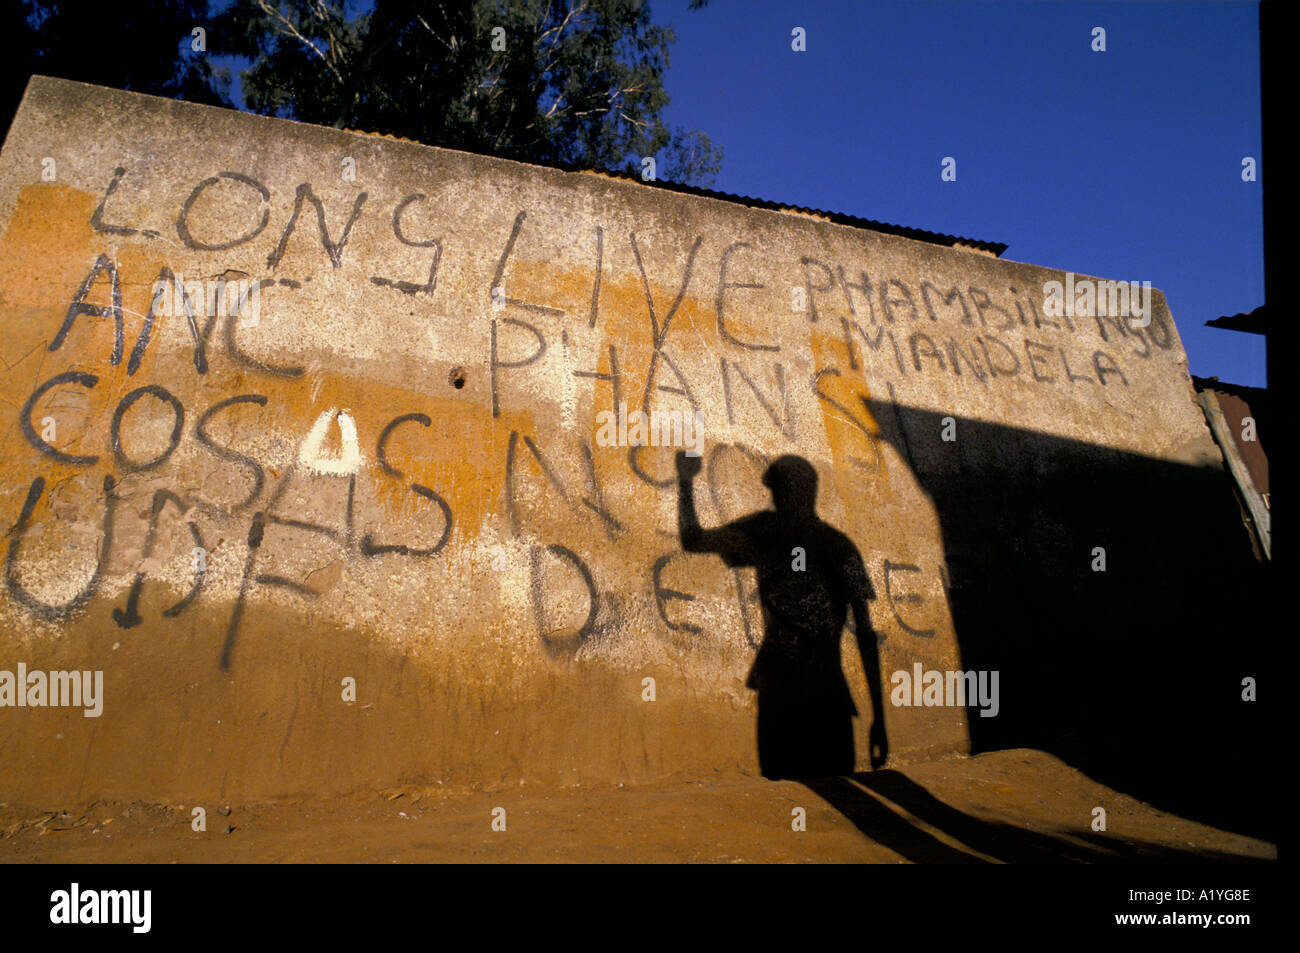 SHADOW OF FIGURE WITH RAISED CLENCHED FIST ON WALL WITH GRAFFITI FOR POLITICAL PARTIES WESTERN TRANSVAAL SOUTH AFRICA 1991 - Stock Image